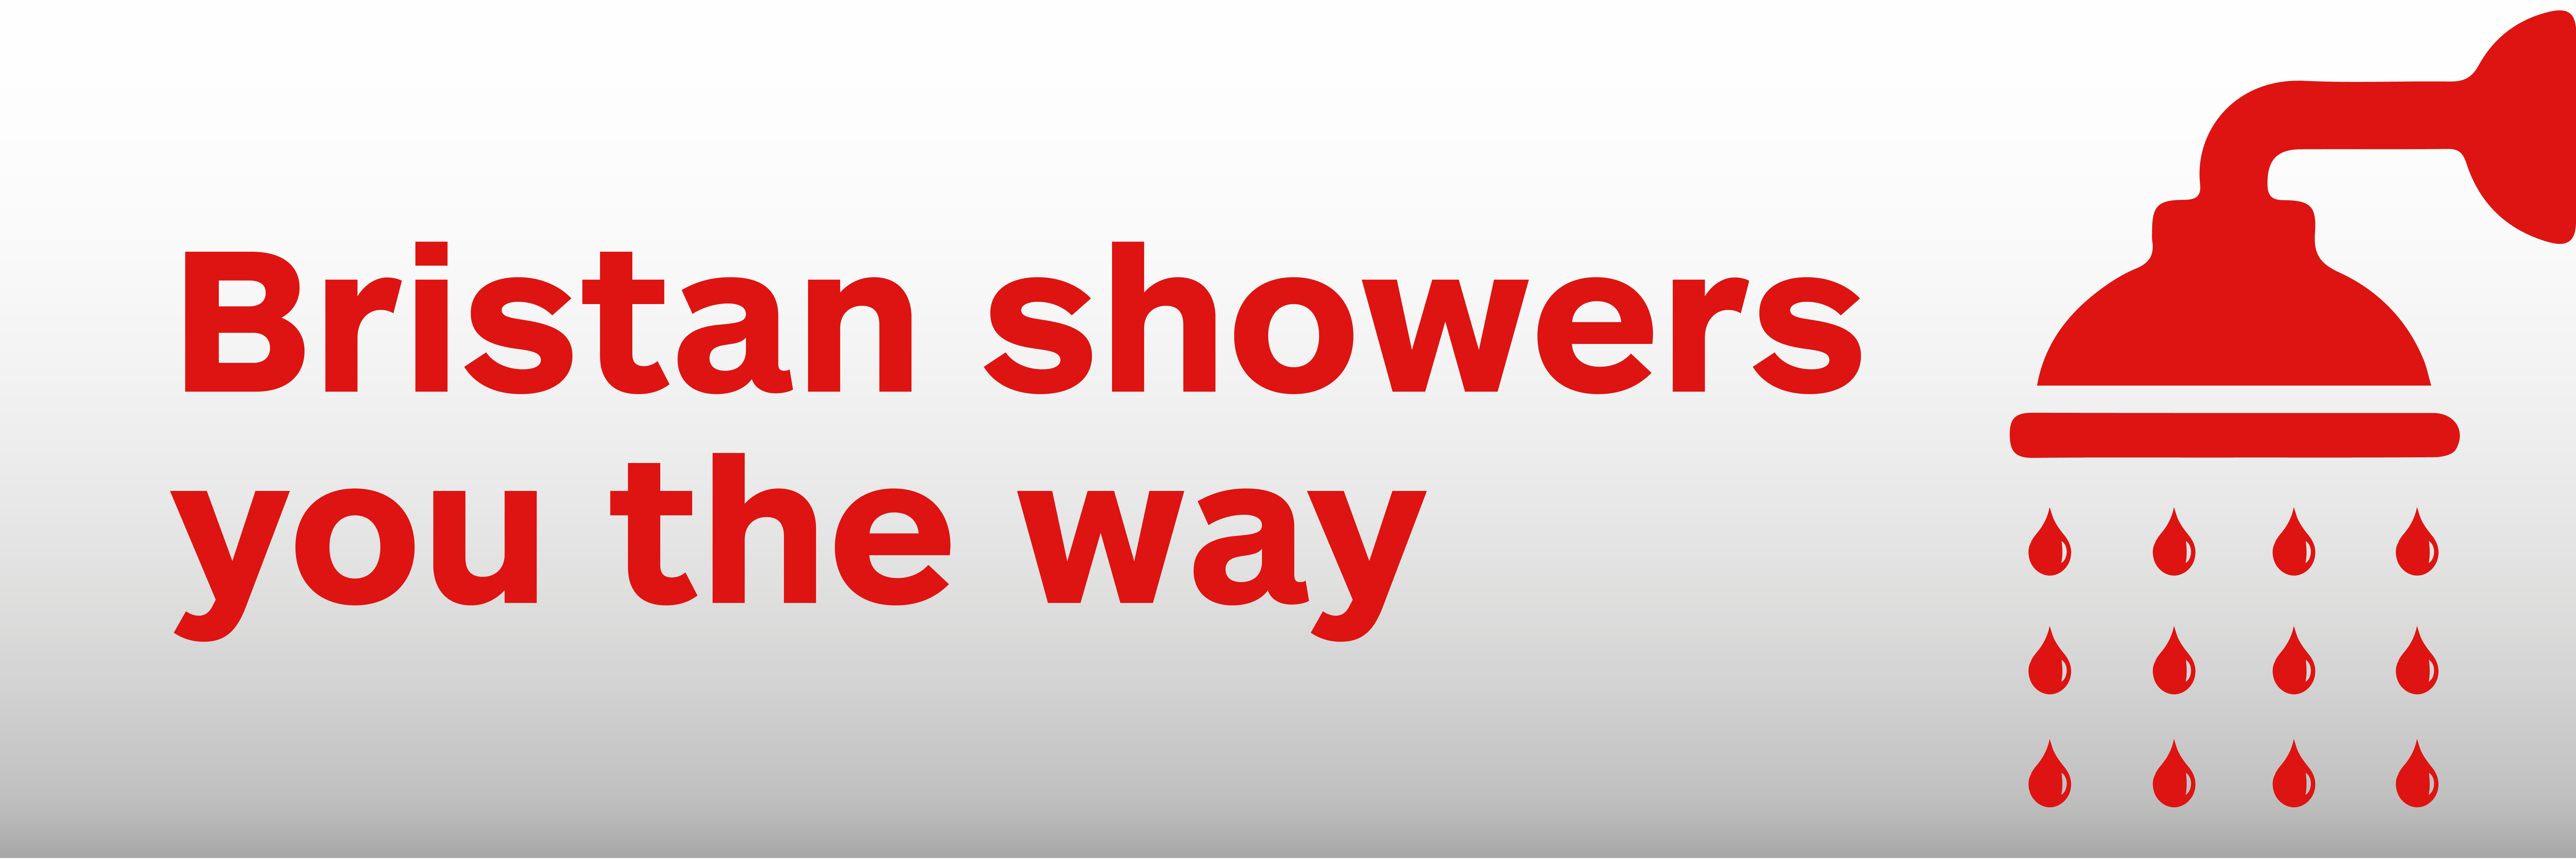 Bristan showers you the way